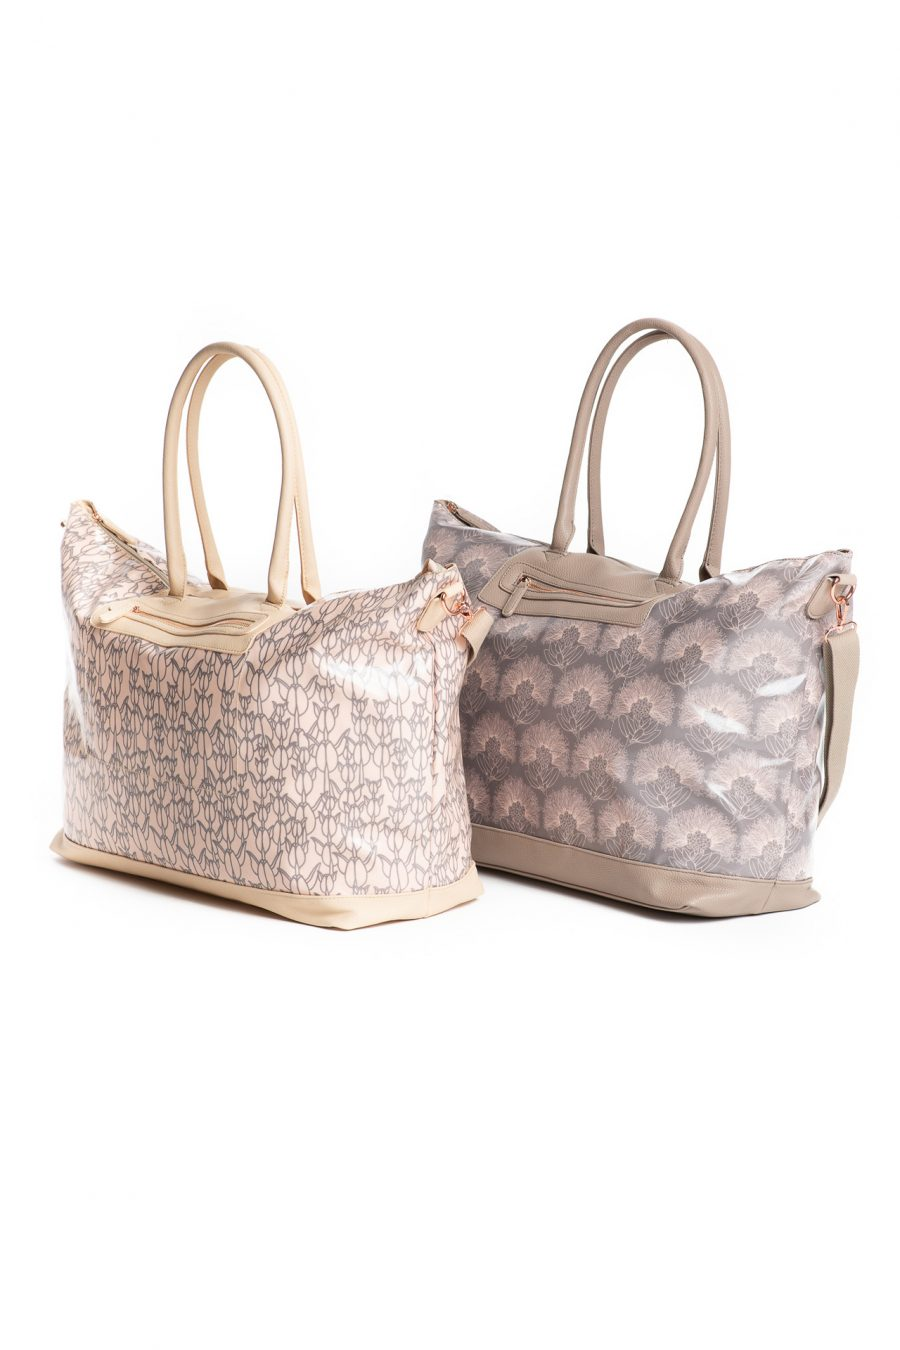 Waonahele Tote Duo in Apricot Sherbert/Gingersnap